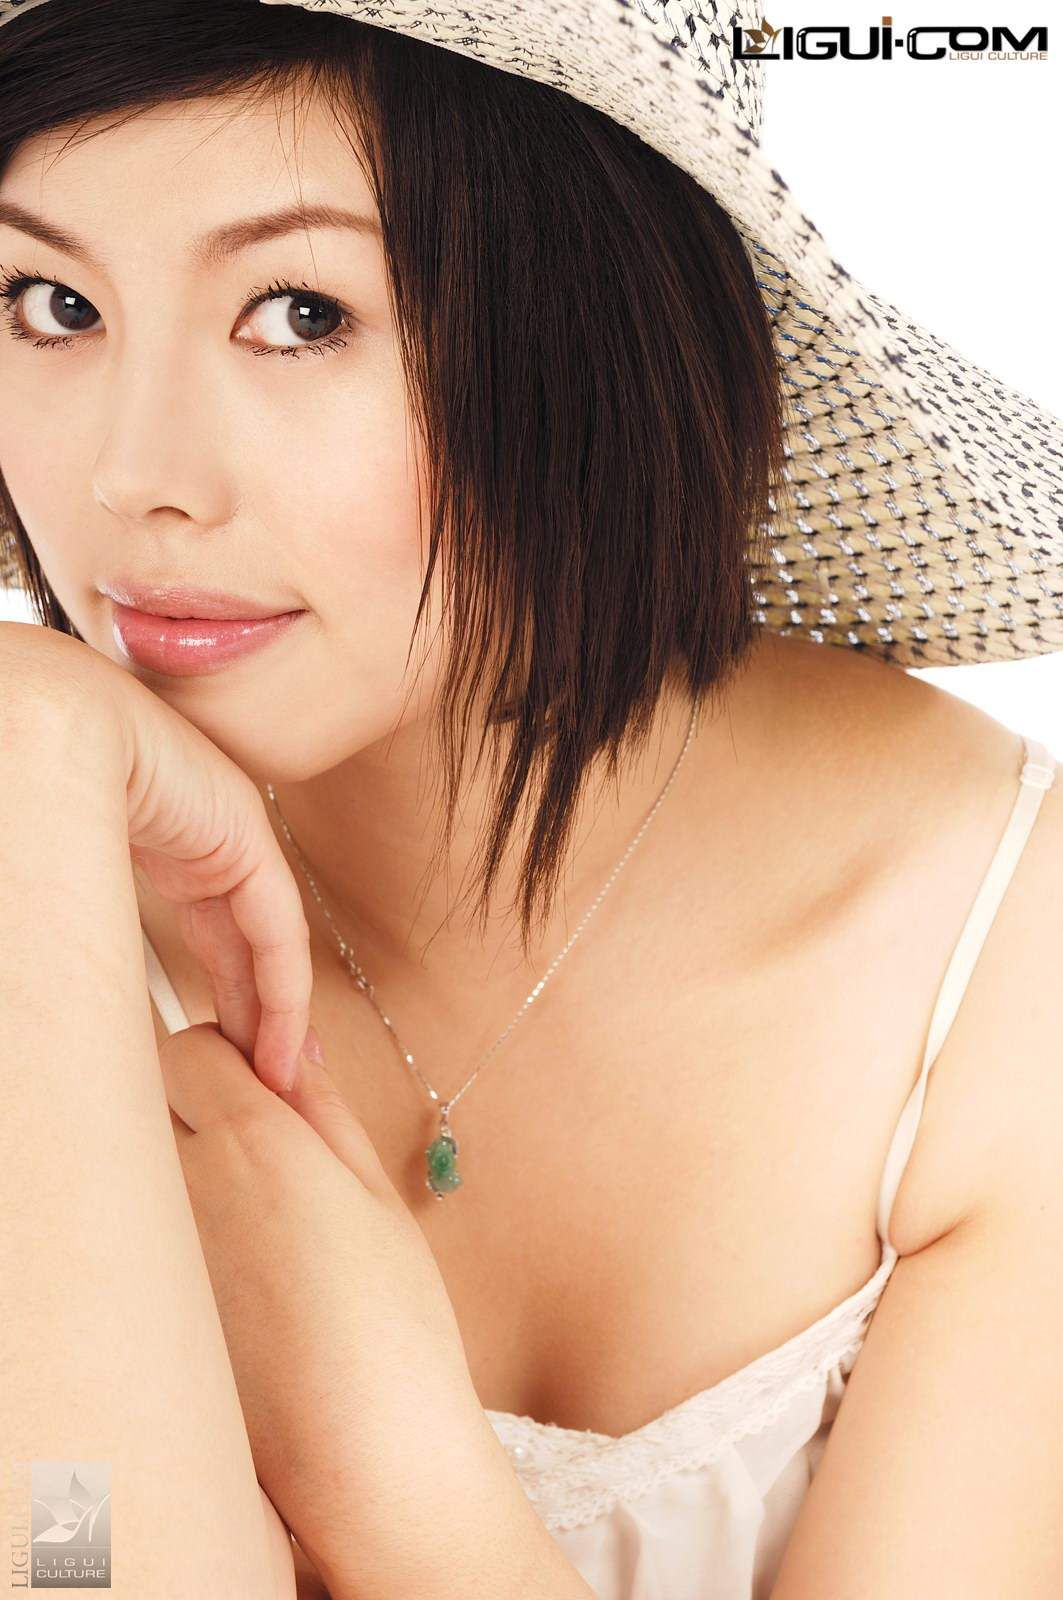 """Model Muzi """"Smile Touching Rounded Straw Hat"""" [丽柜LiGui] Silk Foot Photo Picture 16"""